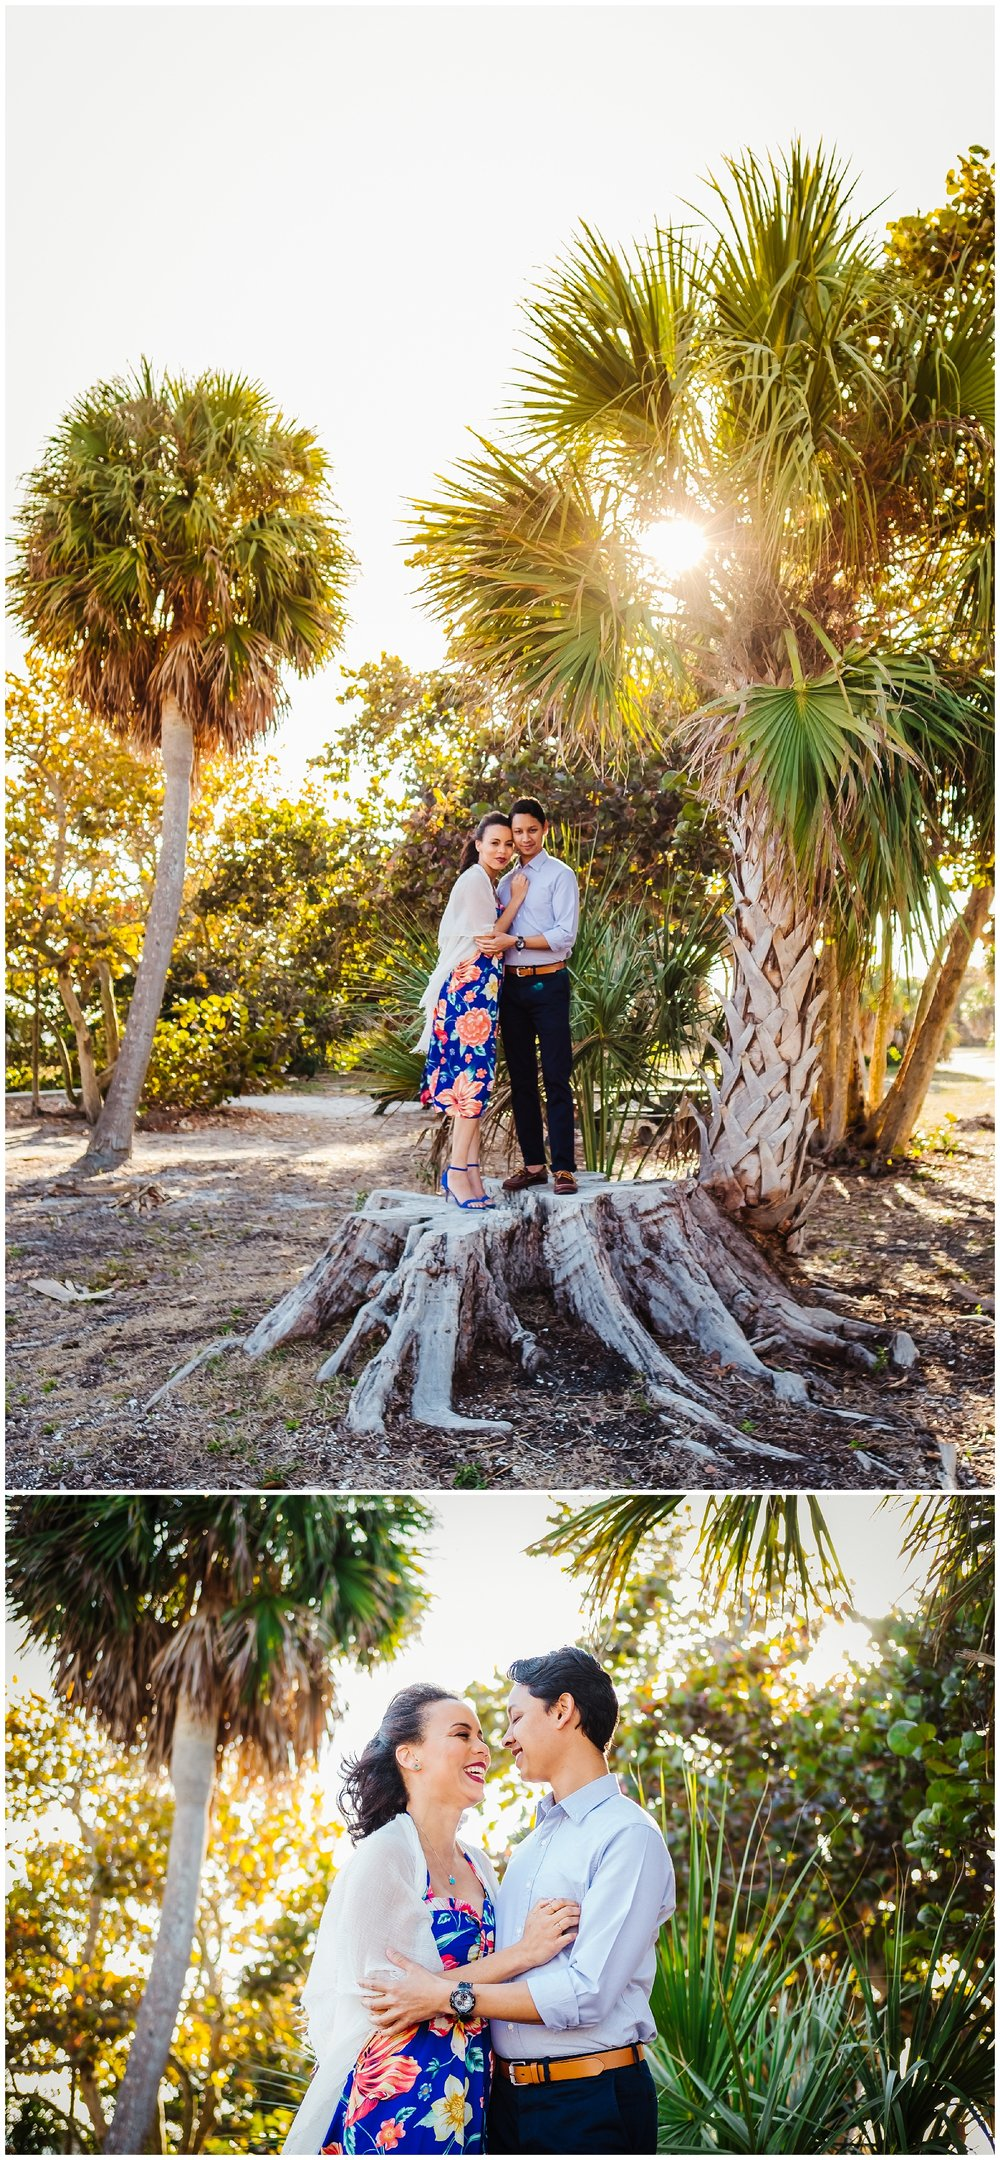 tampa-engagement-photographer-fort-desoto-ruins-sunset-colorful_0003.jpg